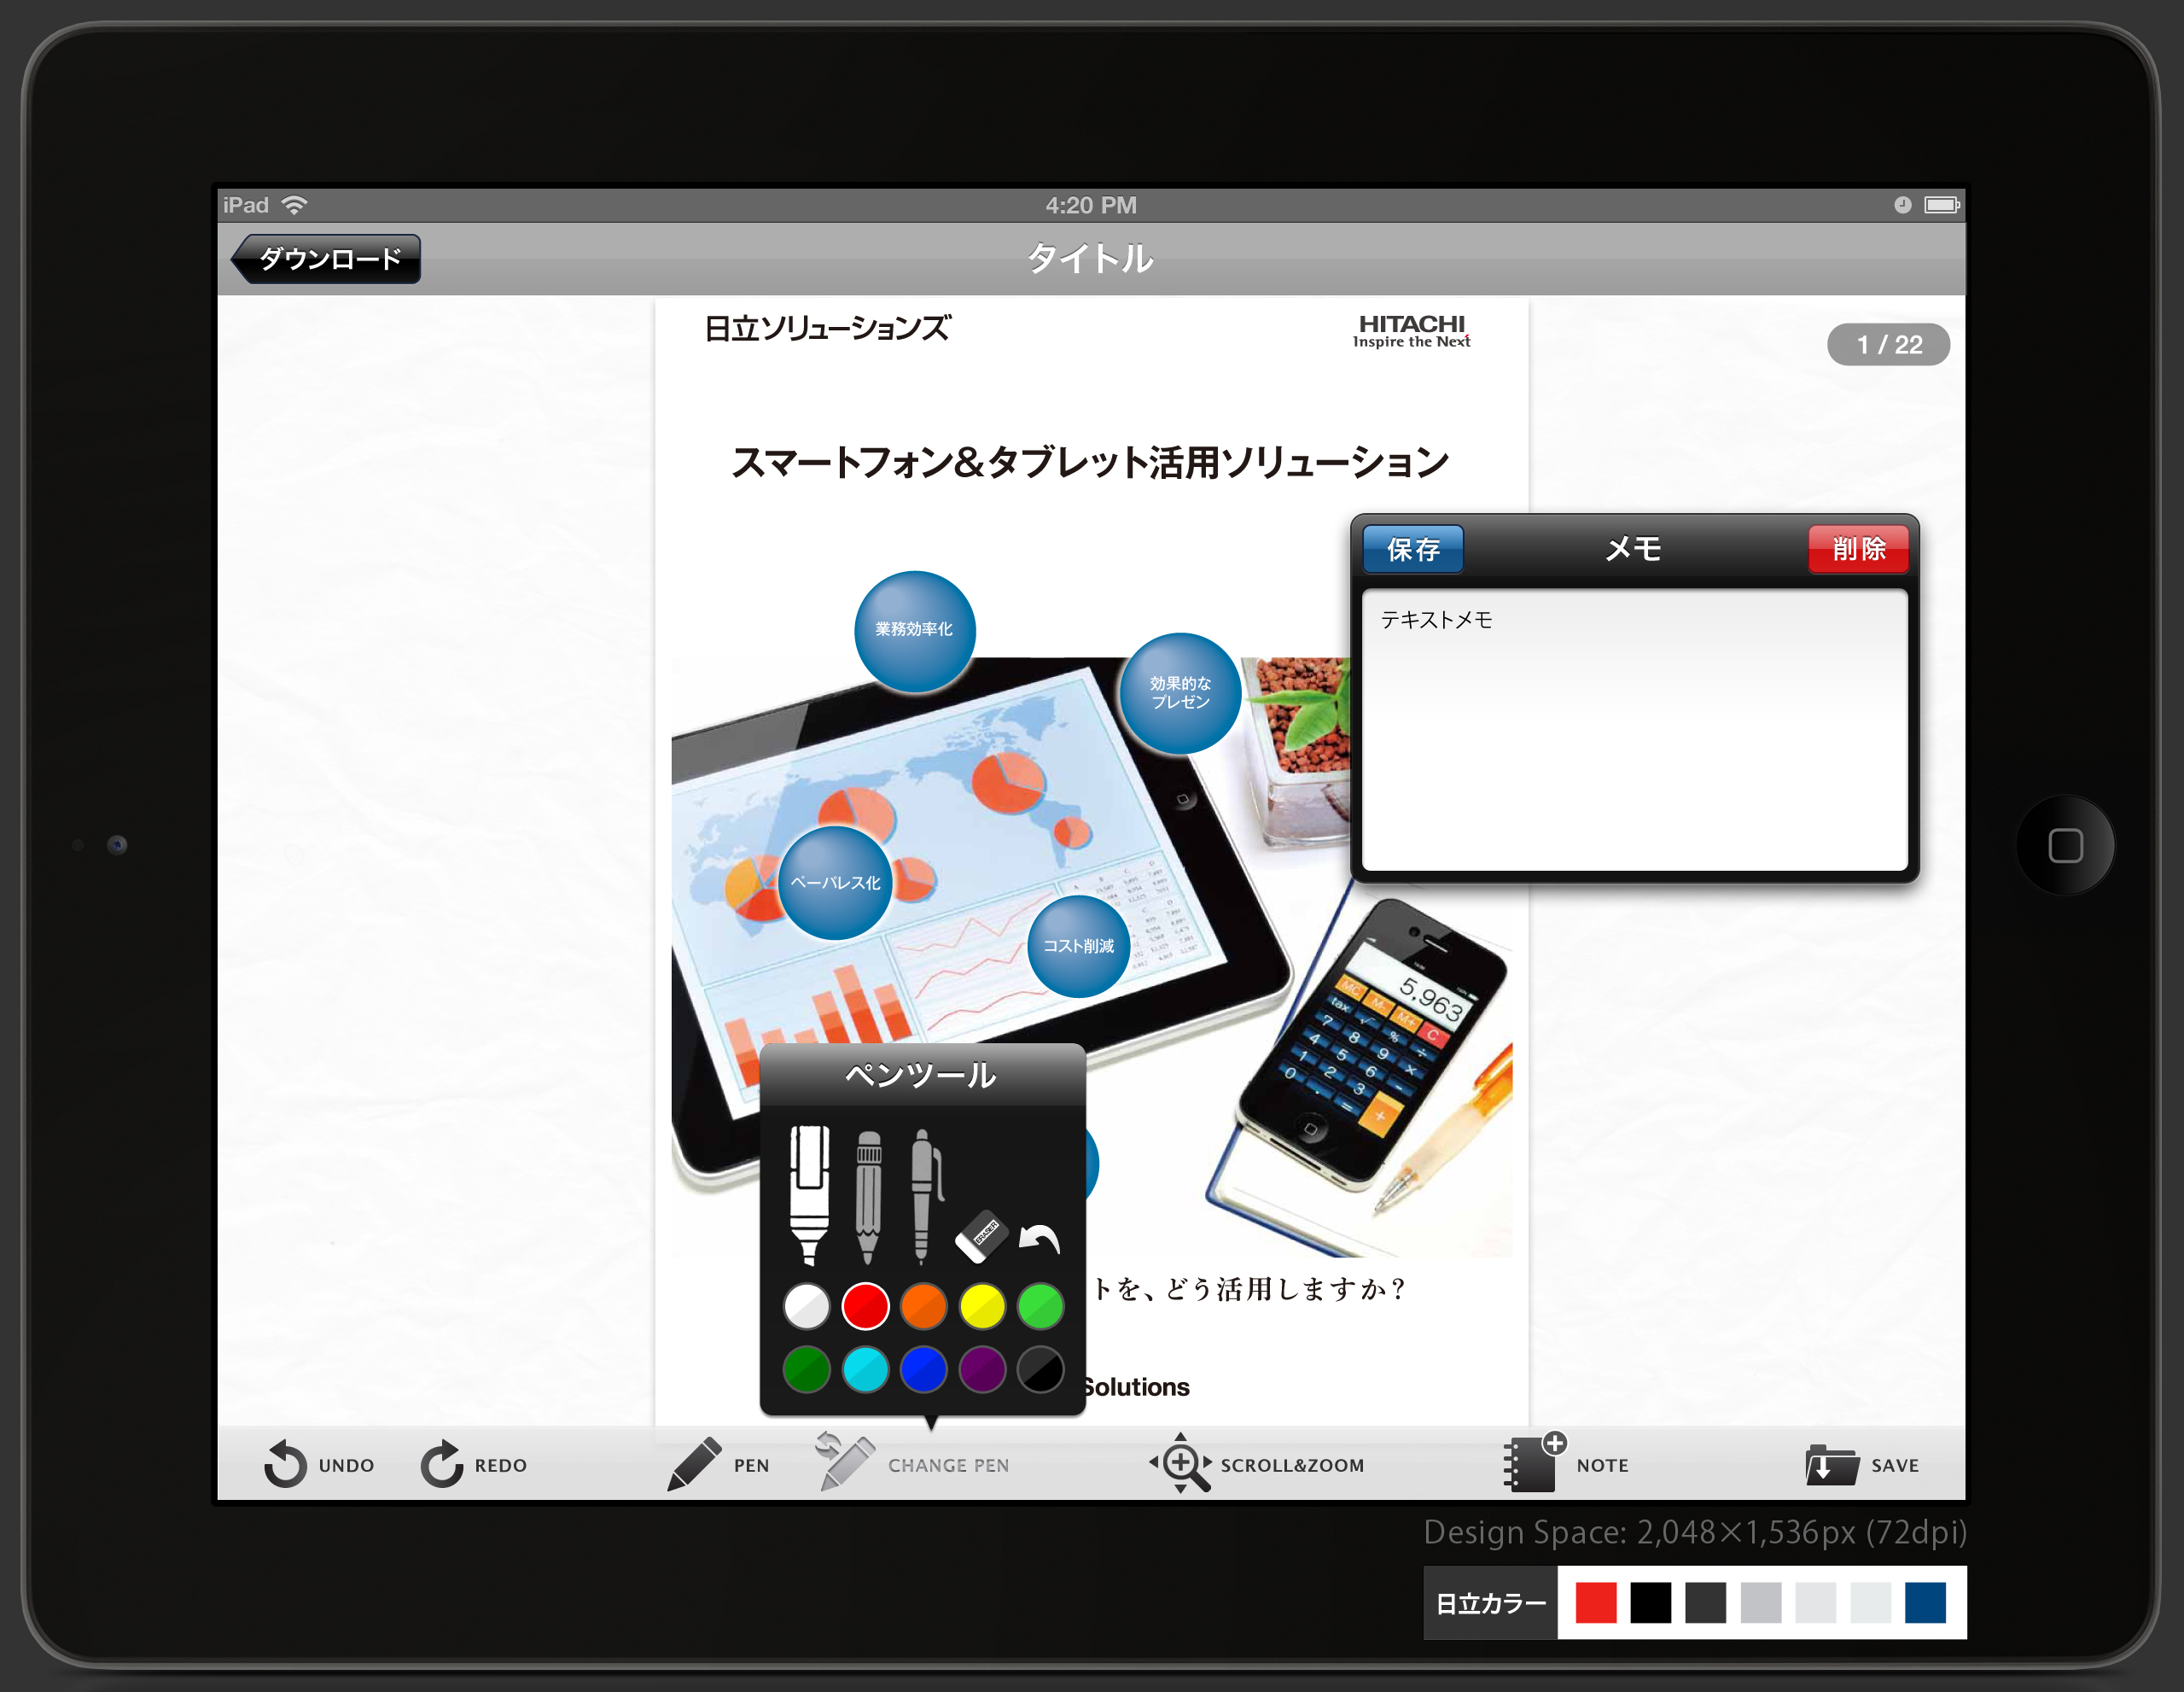 日立 iPhone Apps Design